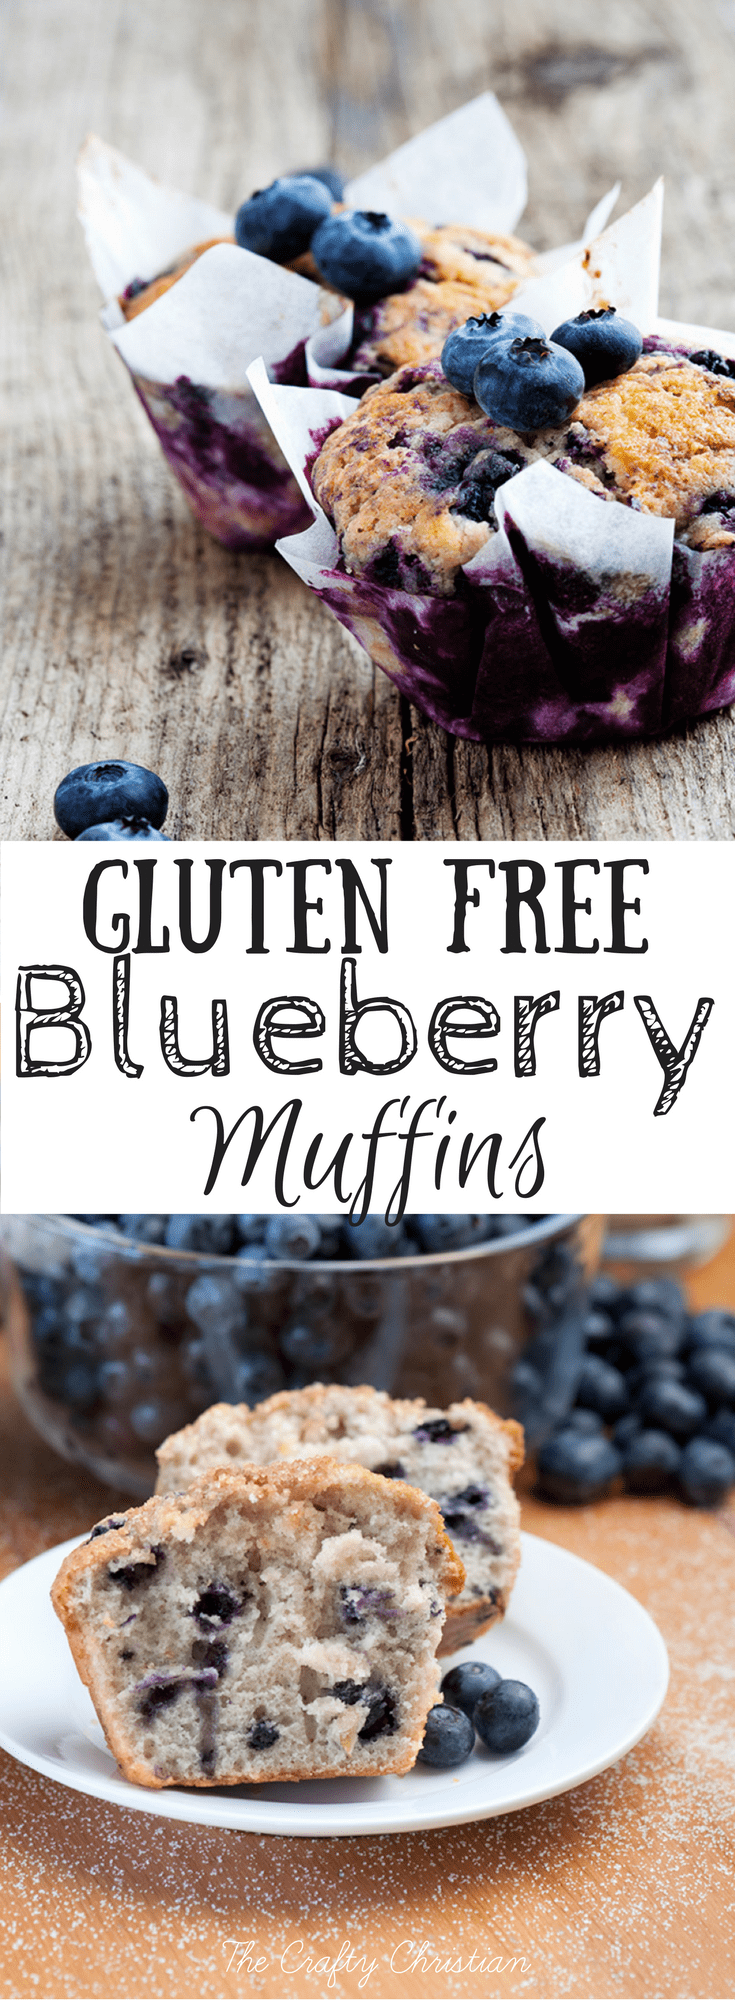 If you're looking for a great, easy breakfast recipe that your kids will love, look no further!  These gluten free blueberry muffins are perfect for Christmas morning, or any other special occasion!